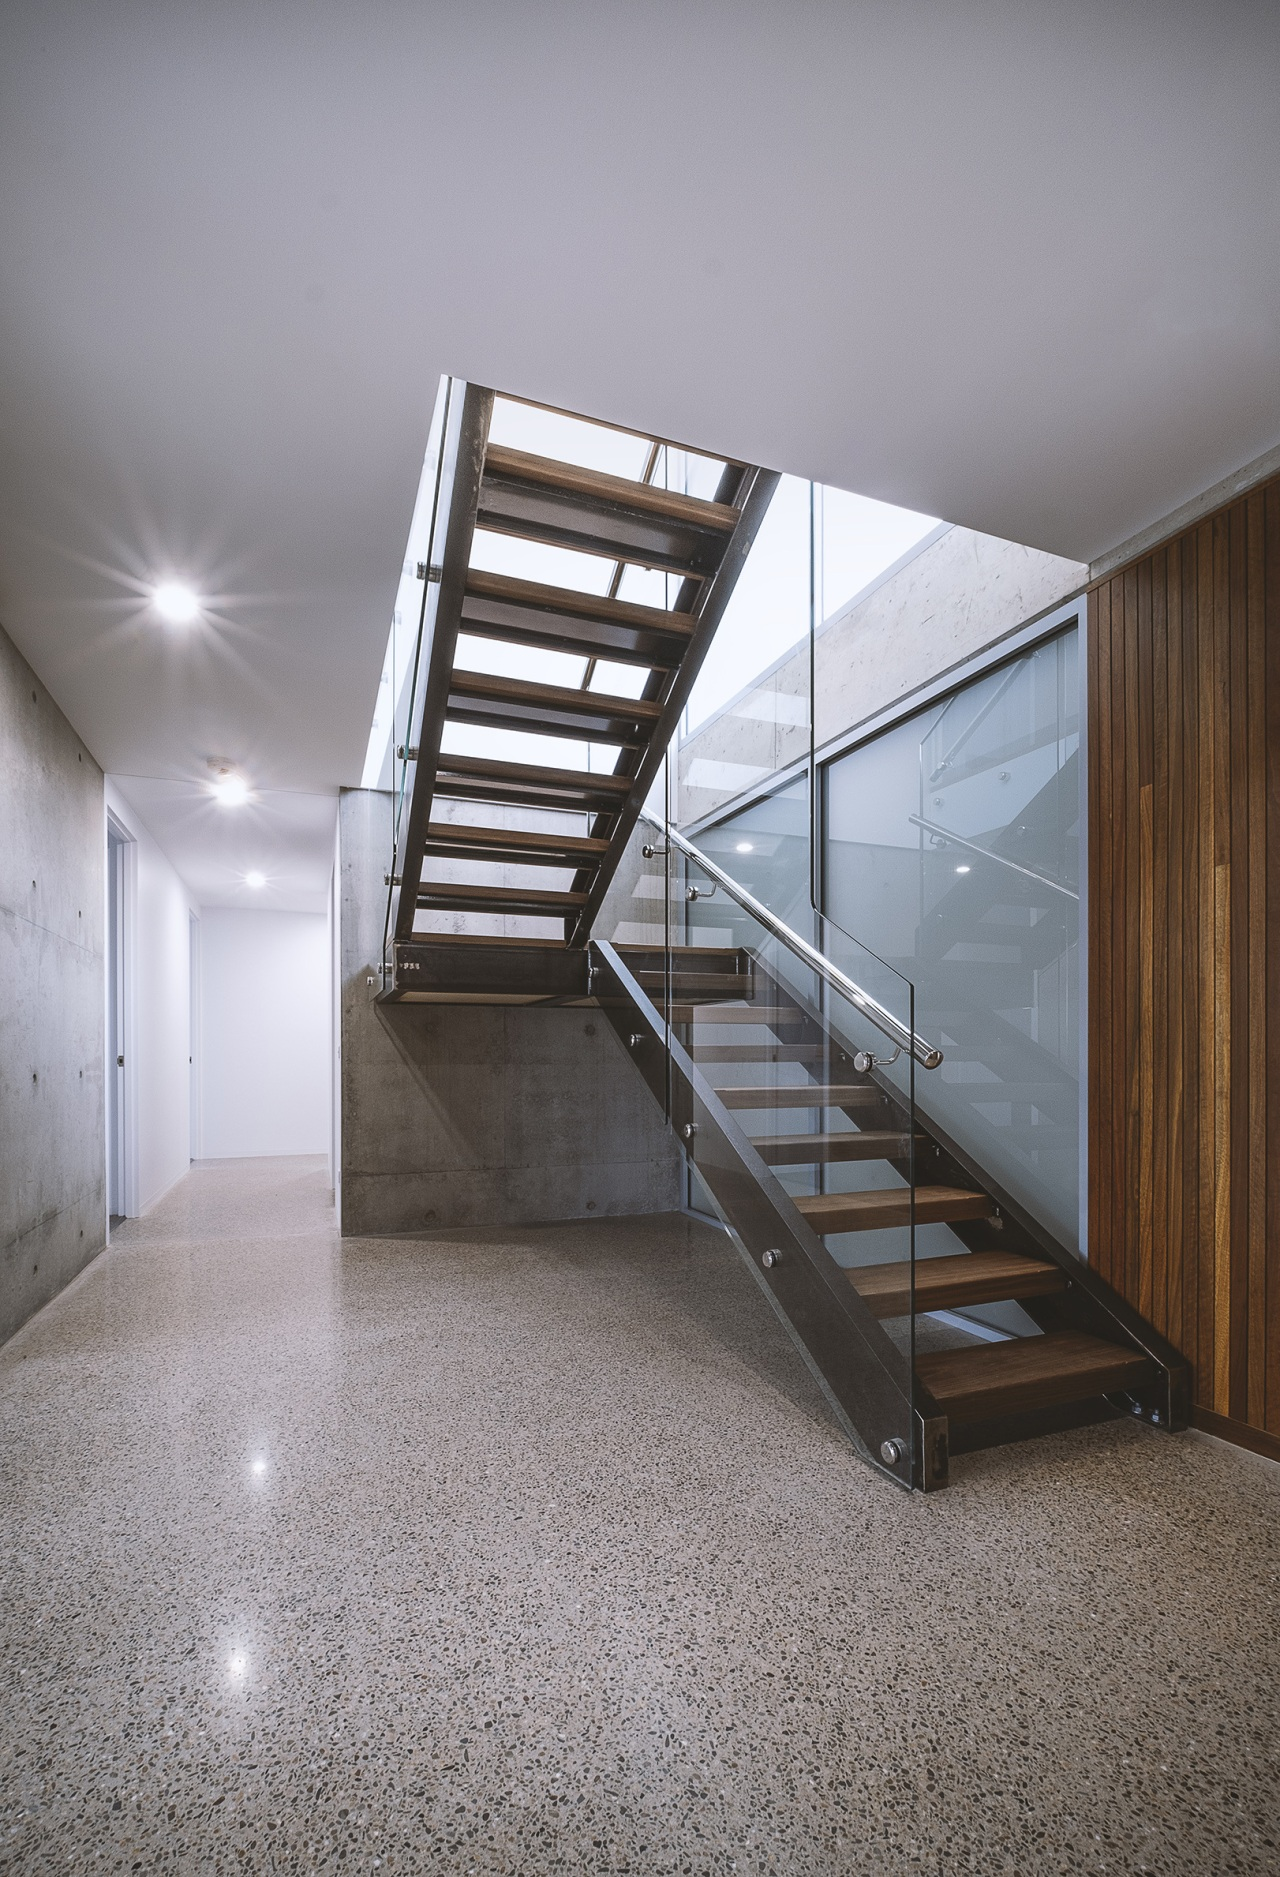 A translucent glass wall sits beyond the stairs